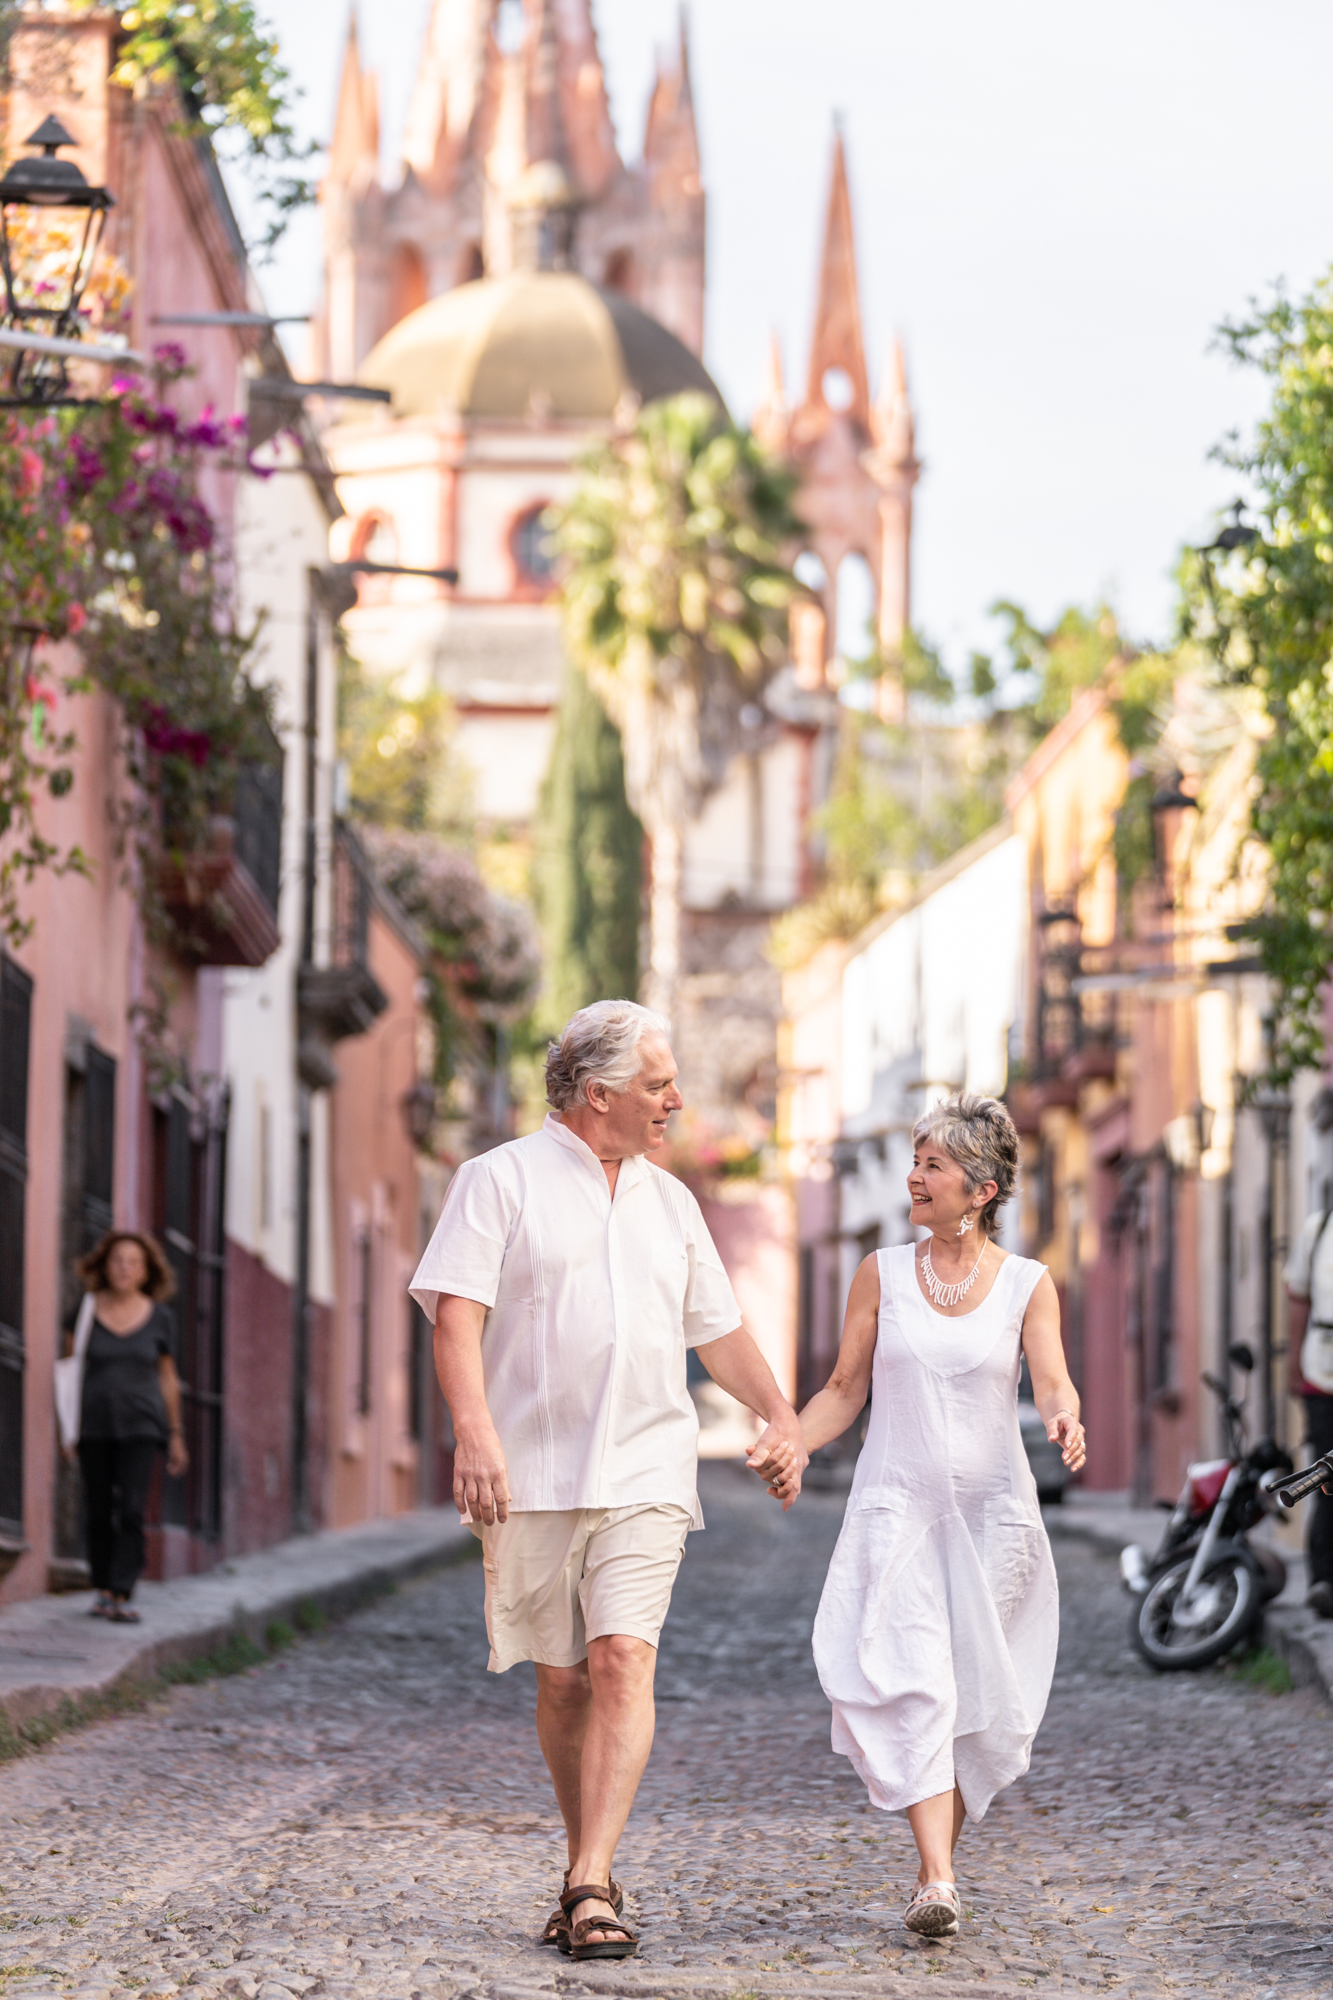 Photoshoot session in San Miguel de Allende with Suzanne and Leo-15.jpg